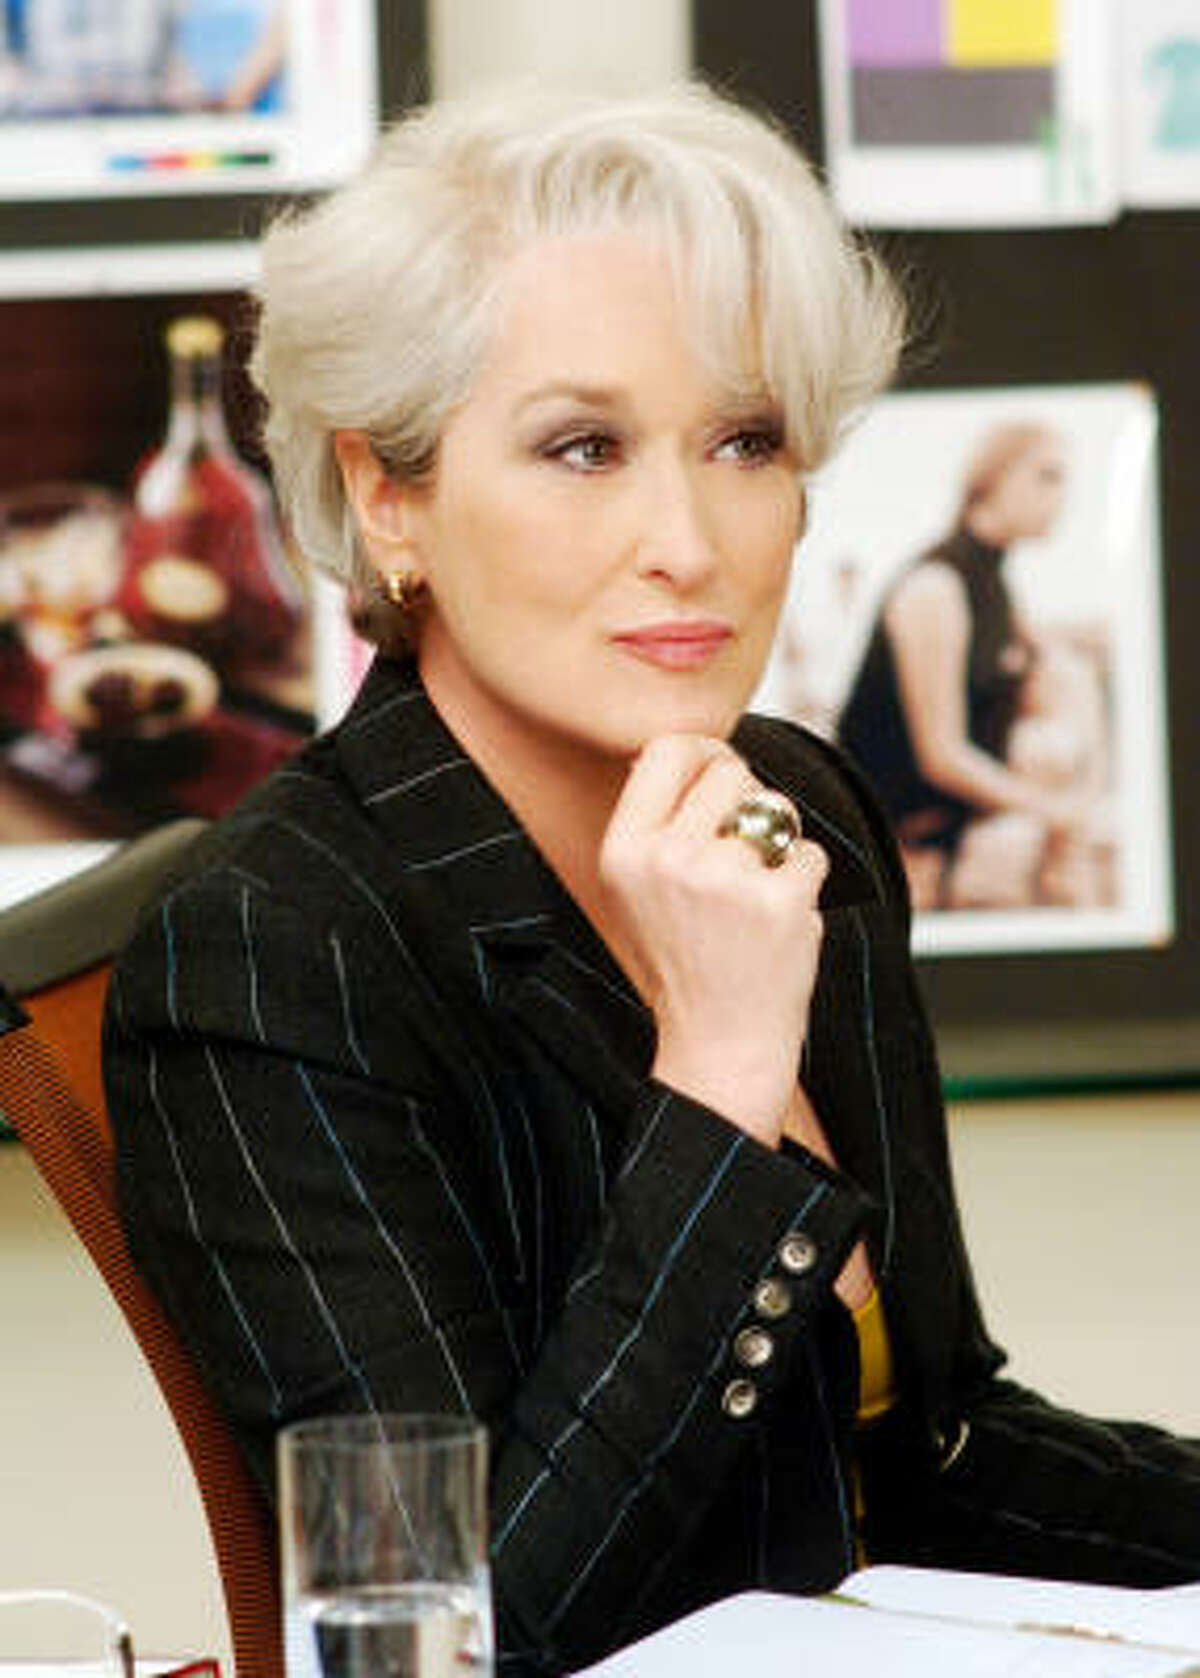 Miranda Priestly (Meryl Streep, right) has her new employee (Anne Hathaway) on the ropes, in The Devil Wears Prada.